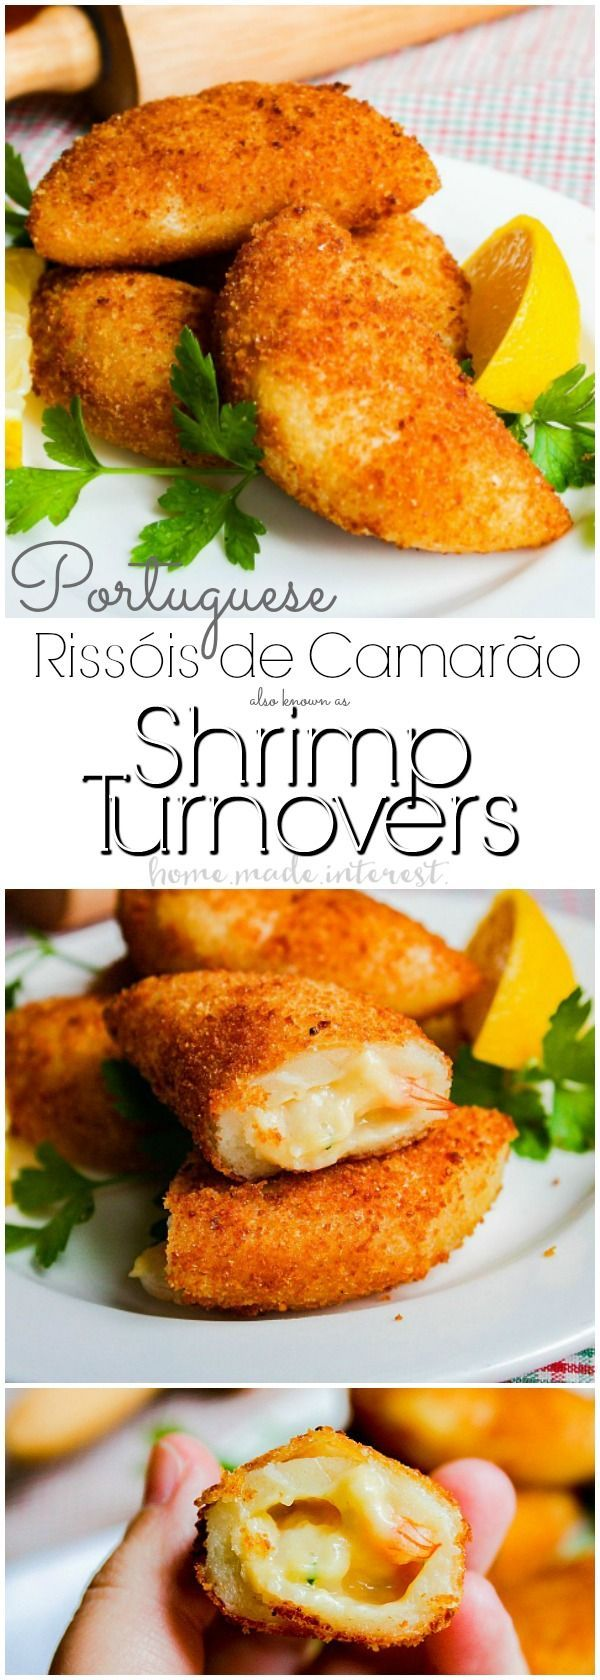 Portuguese Shrimp Turnovers | My favorite appetizer for parties and celebrations are these Portuguese Shrimp Turnovers or Rissóis de Camarão. These shrimp dumplings are the ultimate Portuguese tradition and you'll find them at every party and big event. This Shrimp turnover recipe is one of the best party appetizer recipes you will ever try. These shrimp dumplings are a make ahead appetizer recipe and they made a great seafood recipe for Lent or Easter Brunch recipe.